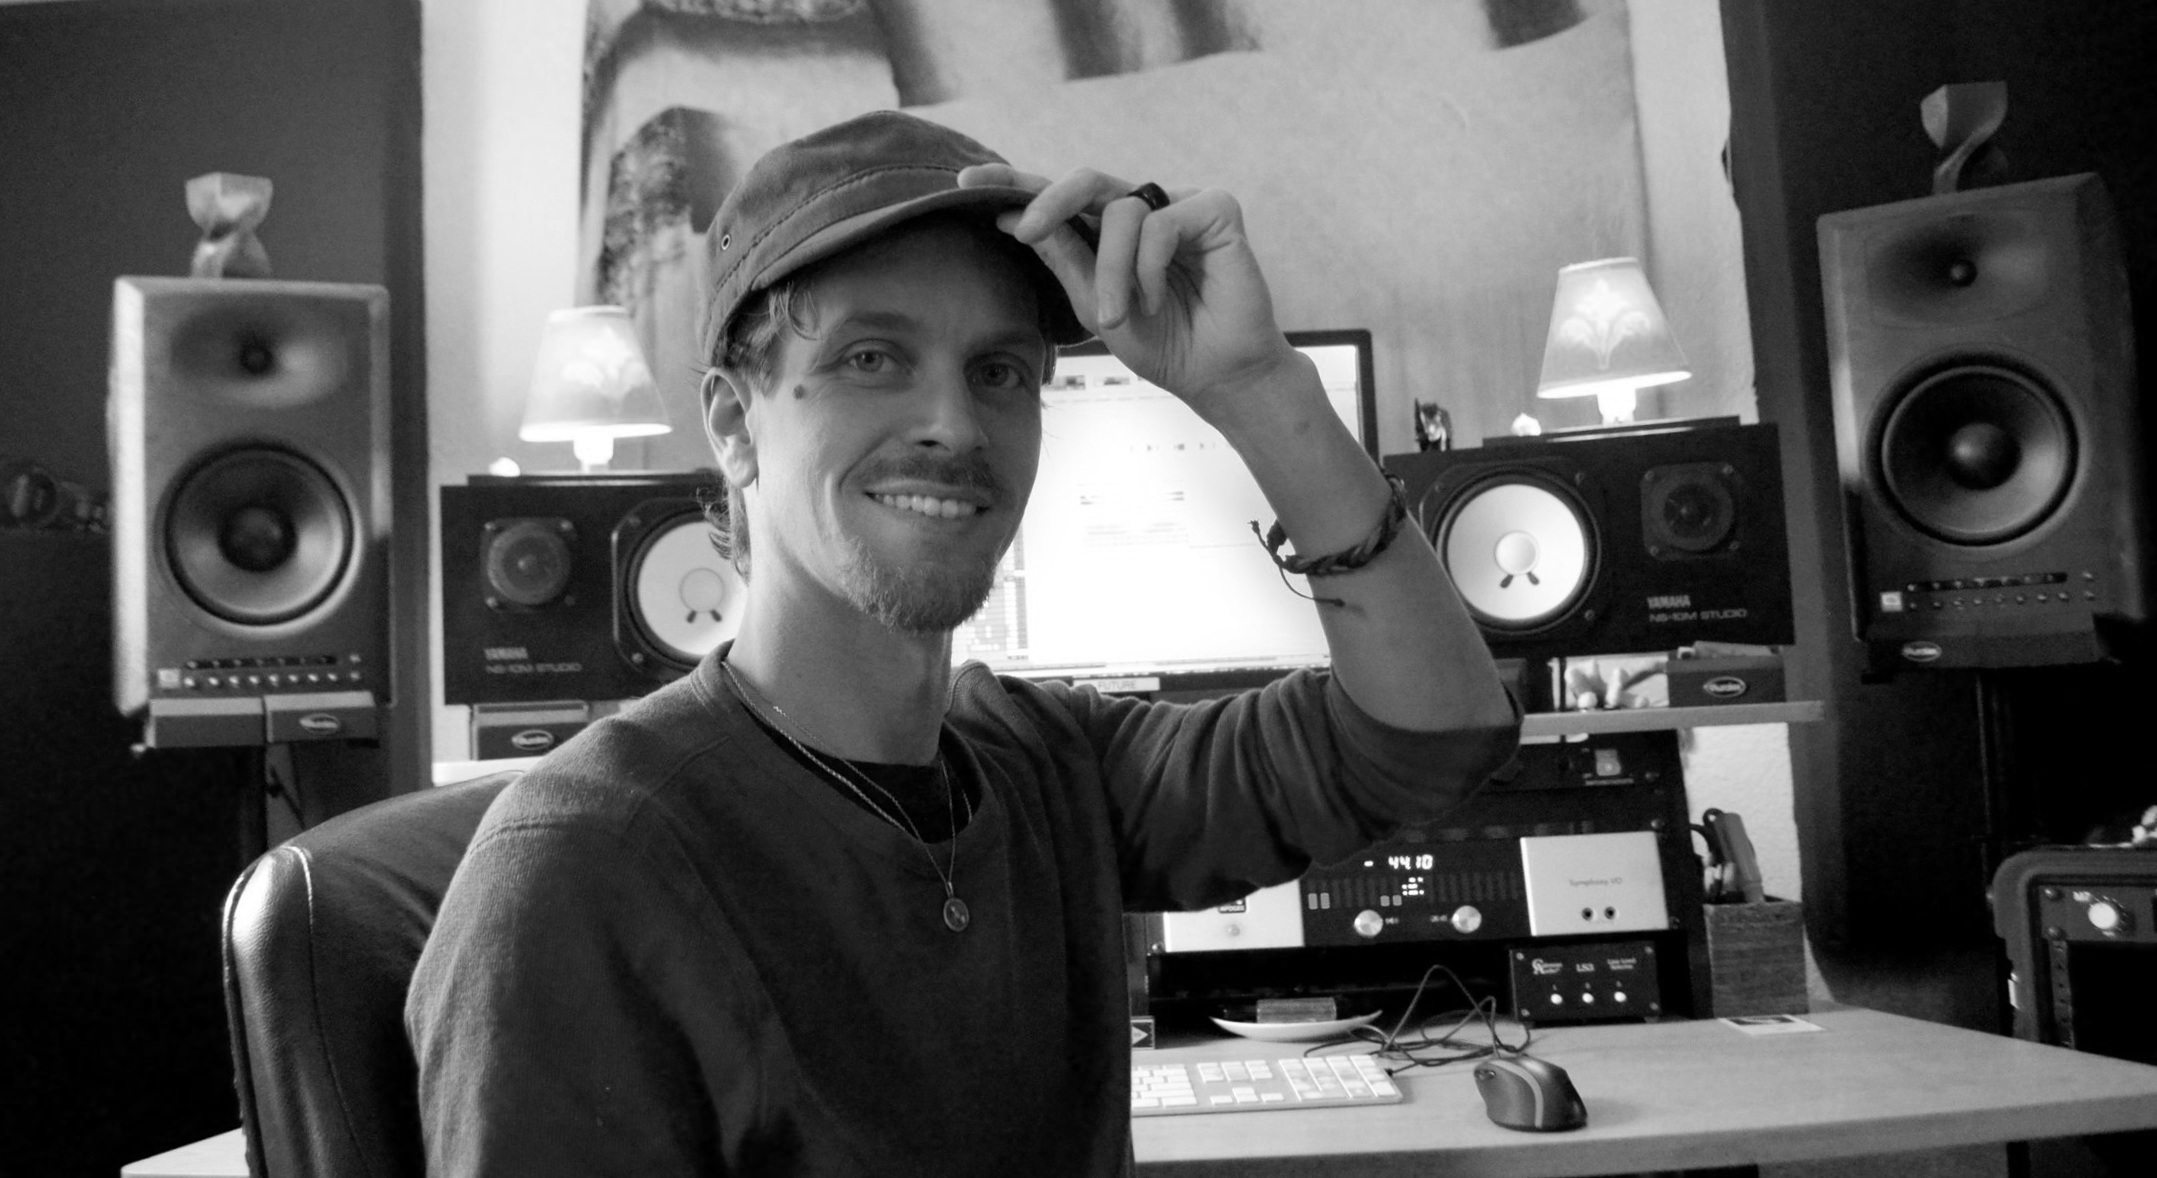 Johannes Raassina - Johannes is a Grammy-nominated engineer, mixer and producer.